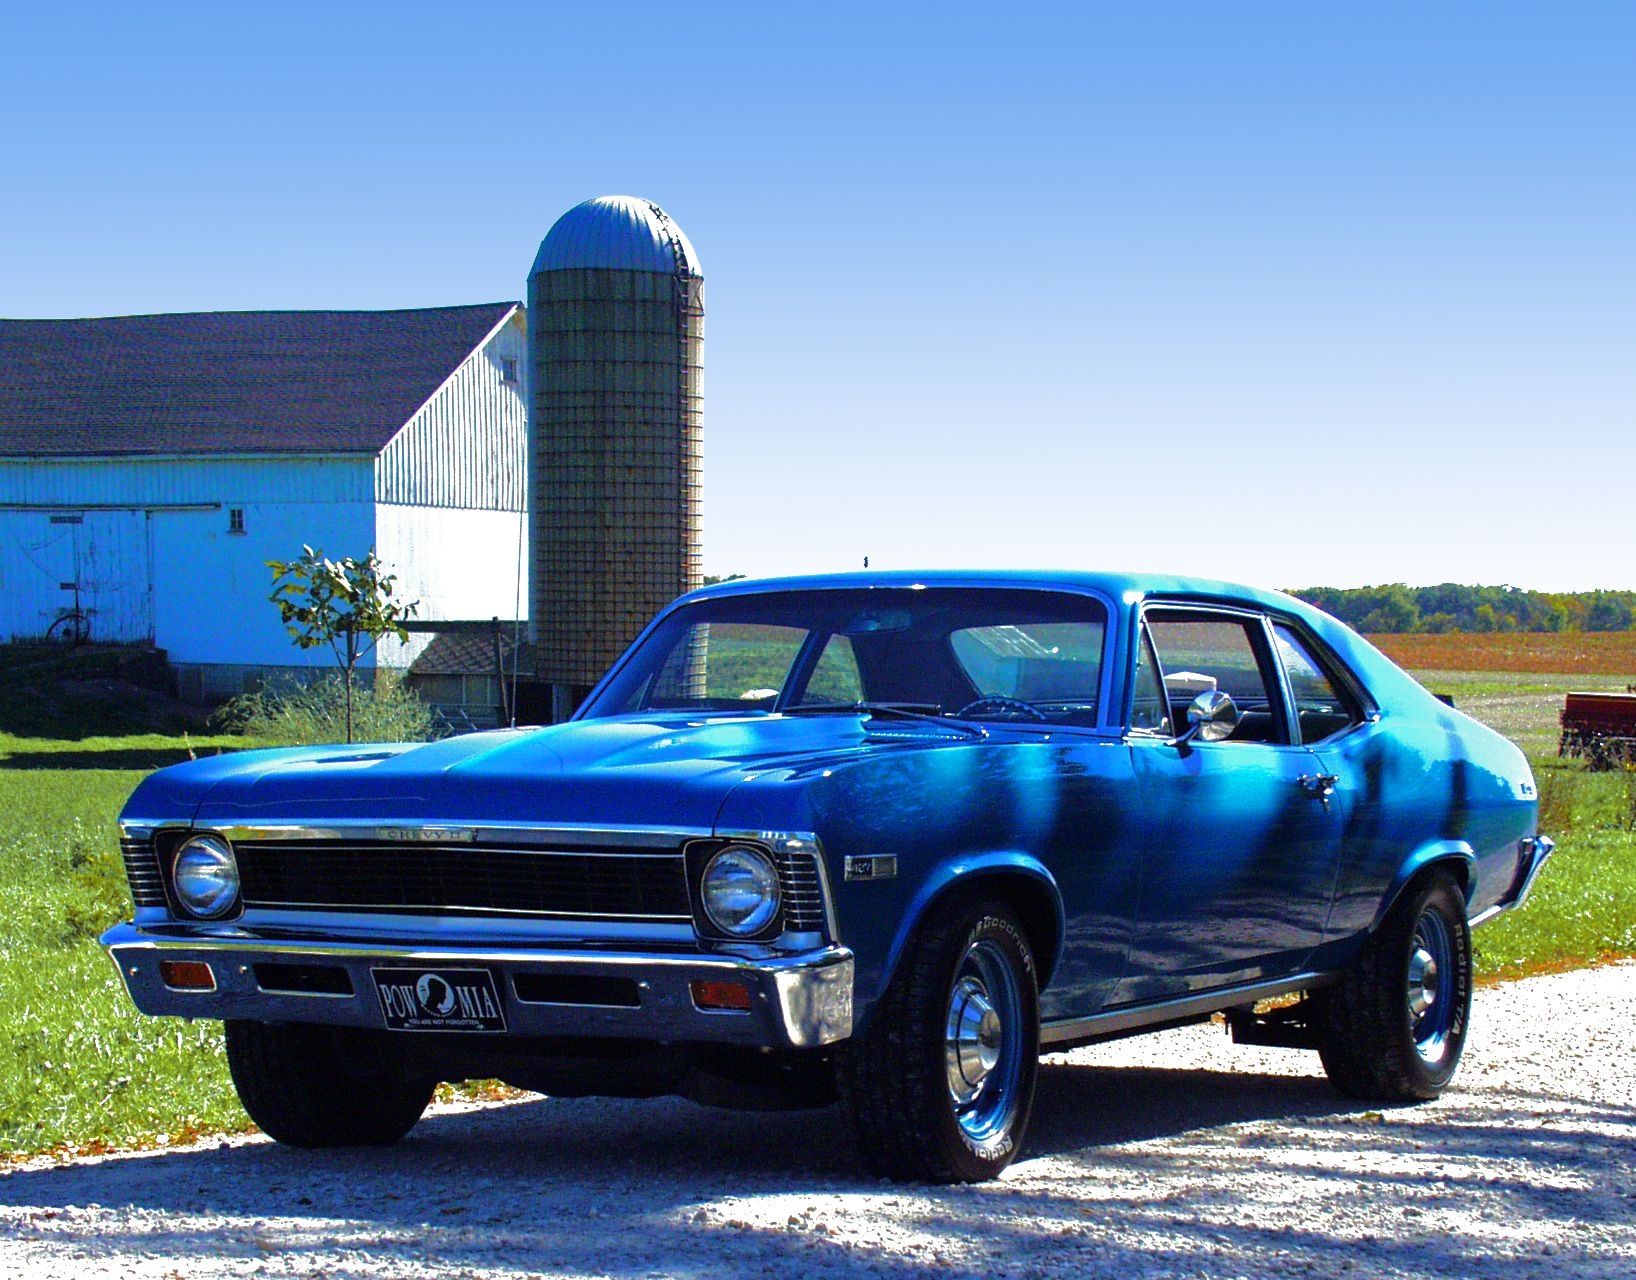 I Also Had A Faded Blue Chevy Nova Just Like This With No Carpeting Car 2 Chevy Muscle Cars Chevy Nova Classic Cars Muscle